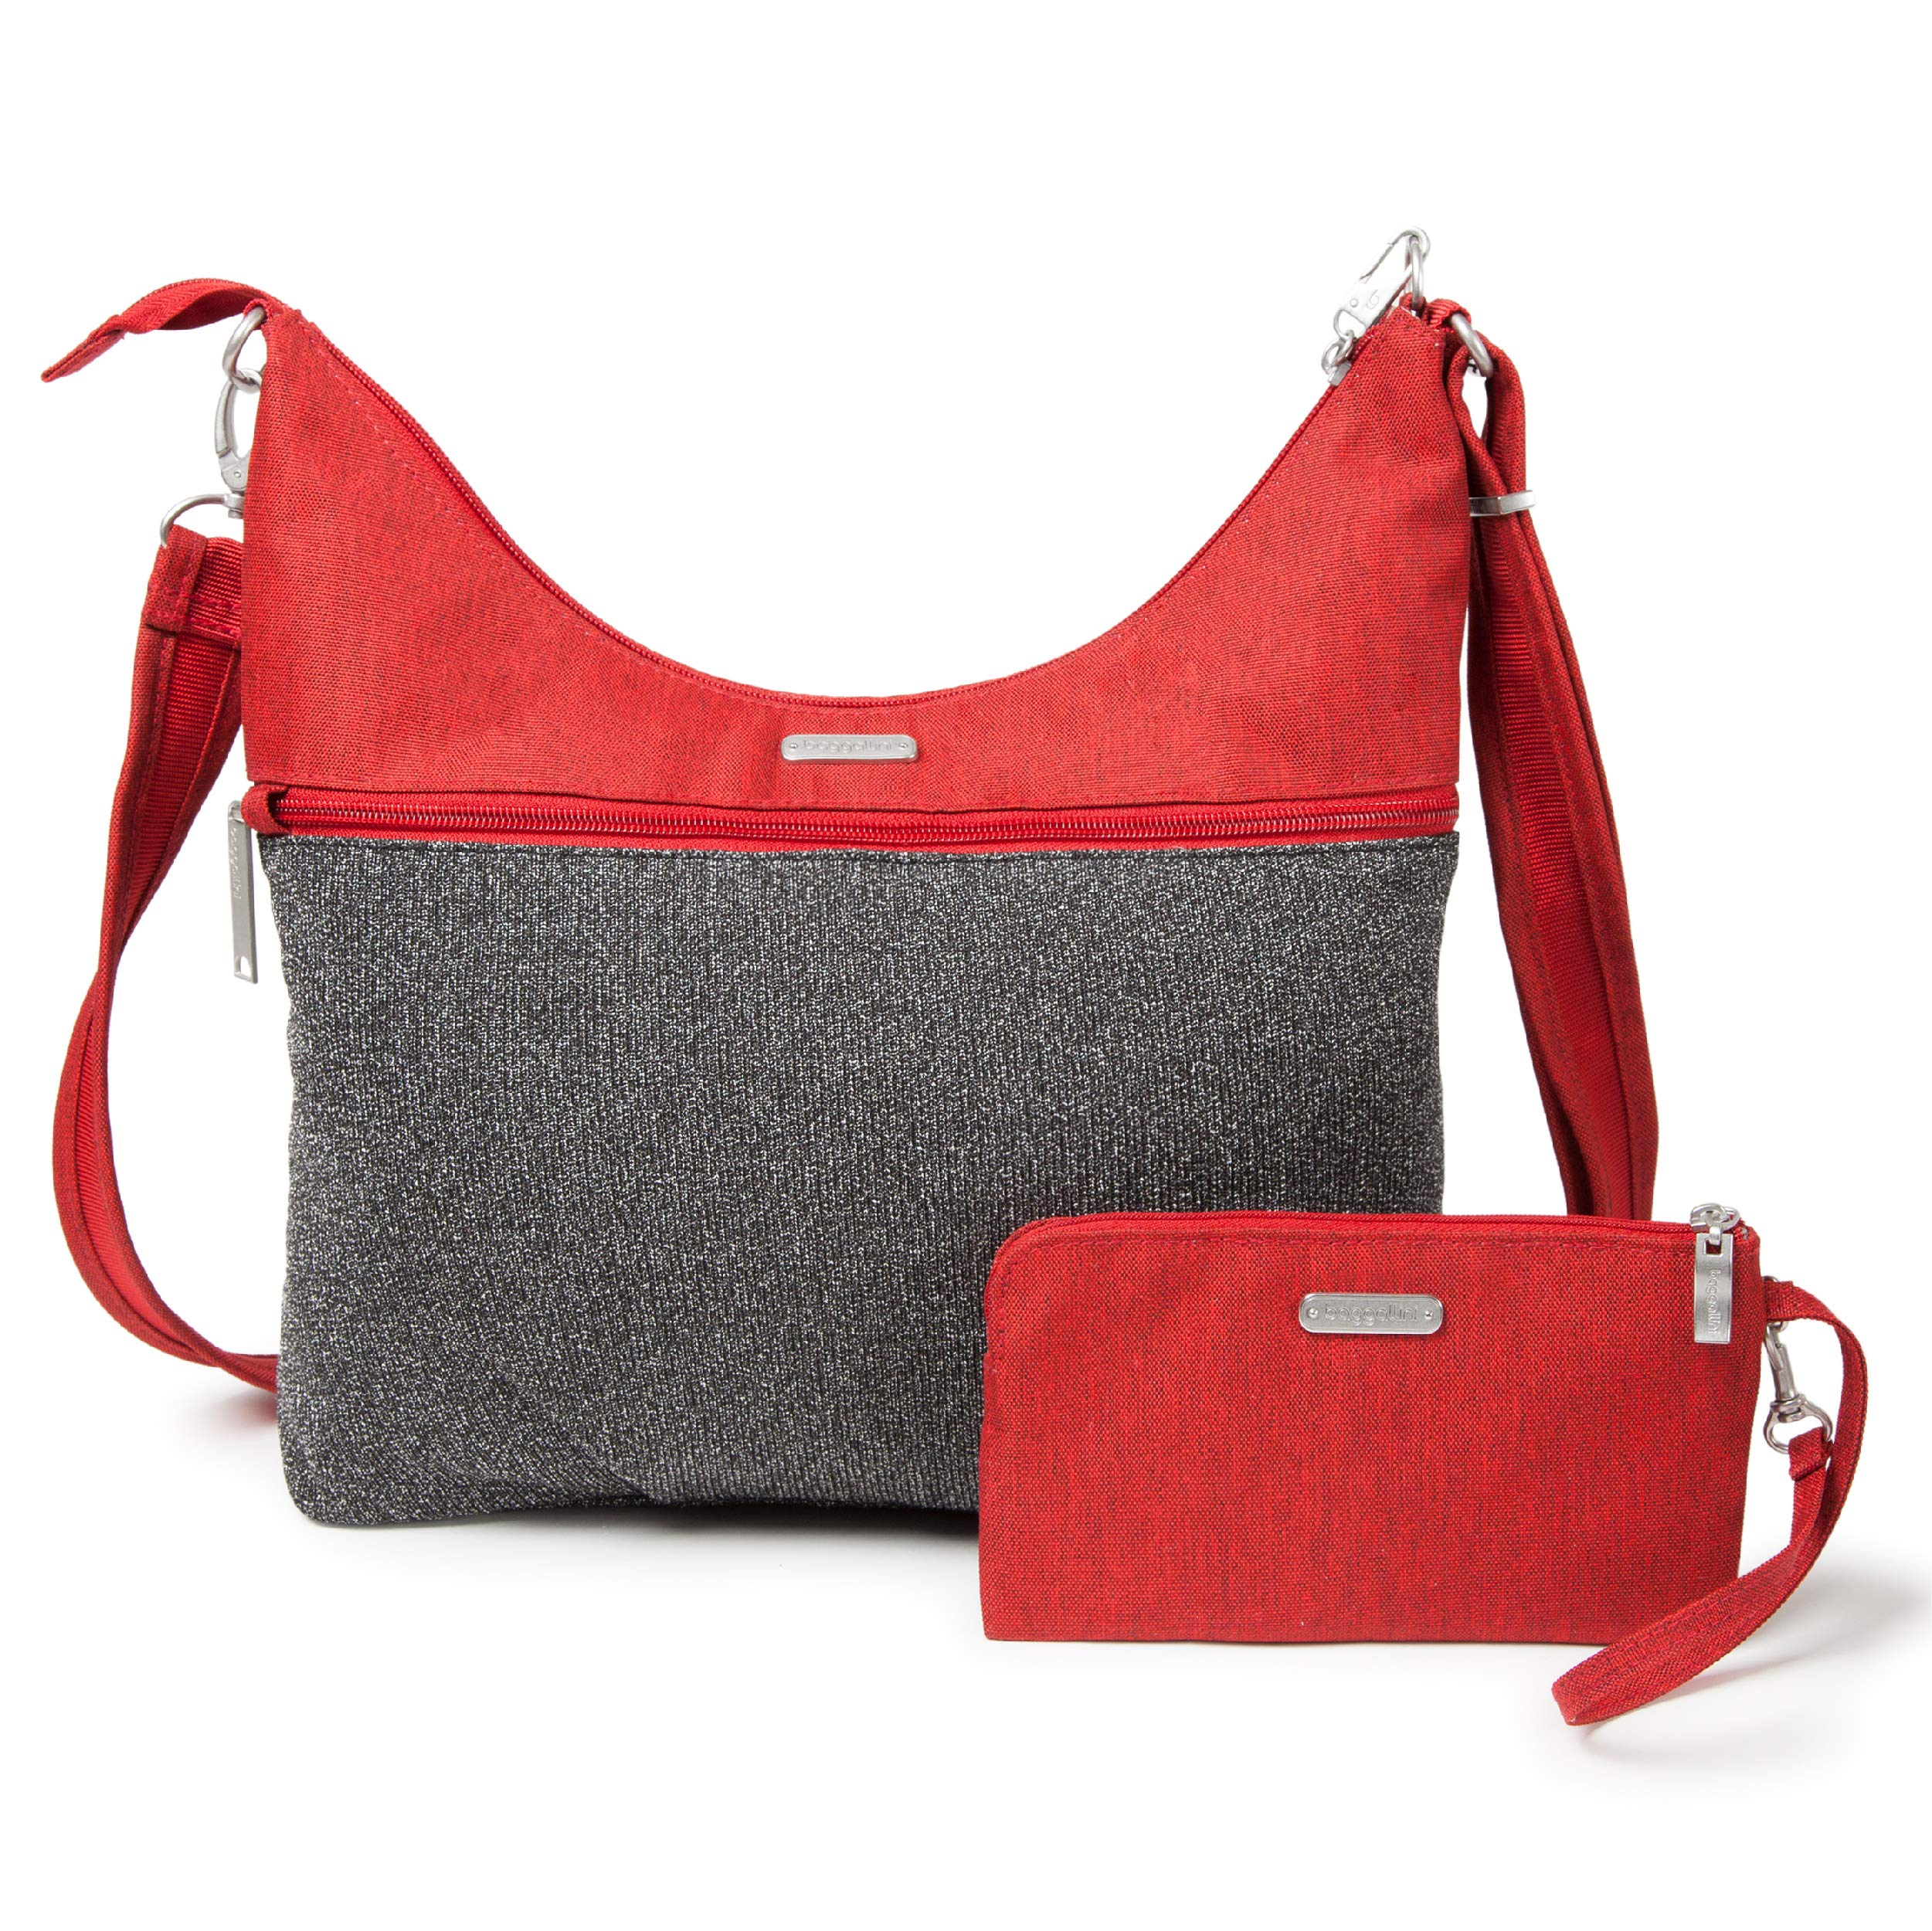 Baggallini Anti-Theft Hobo Bag - Stylish Travel Purse With Locking Zippers and RFID-Protected Wristlet, Red and Gray Design